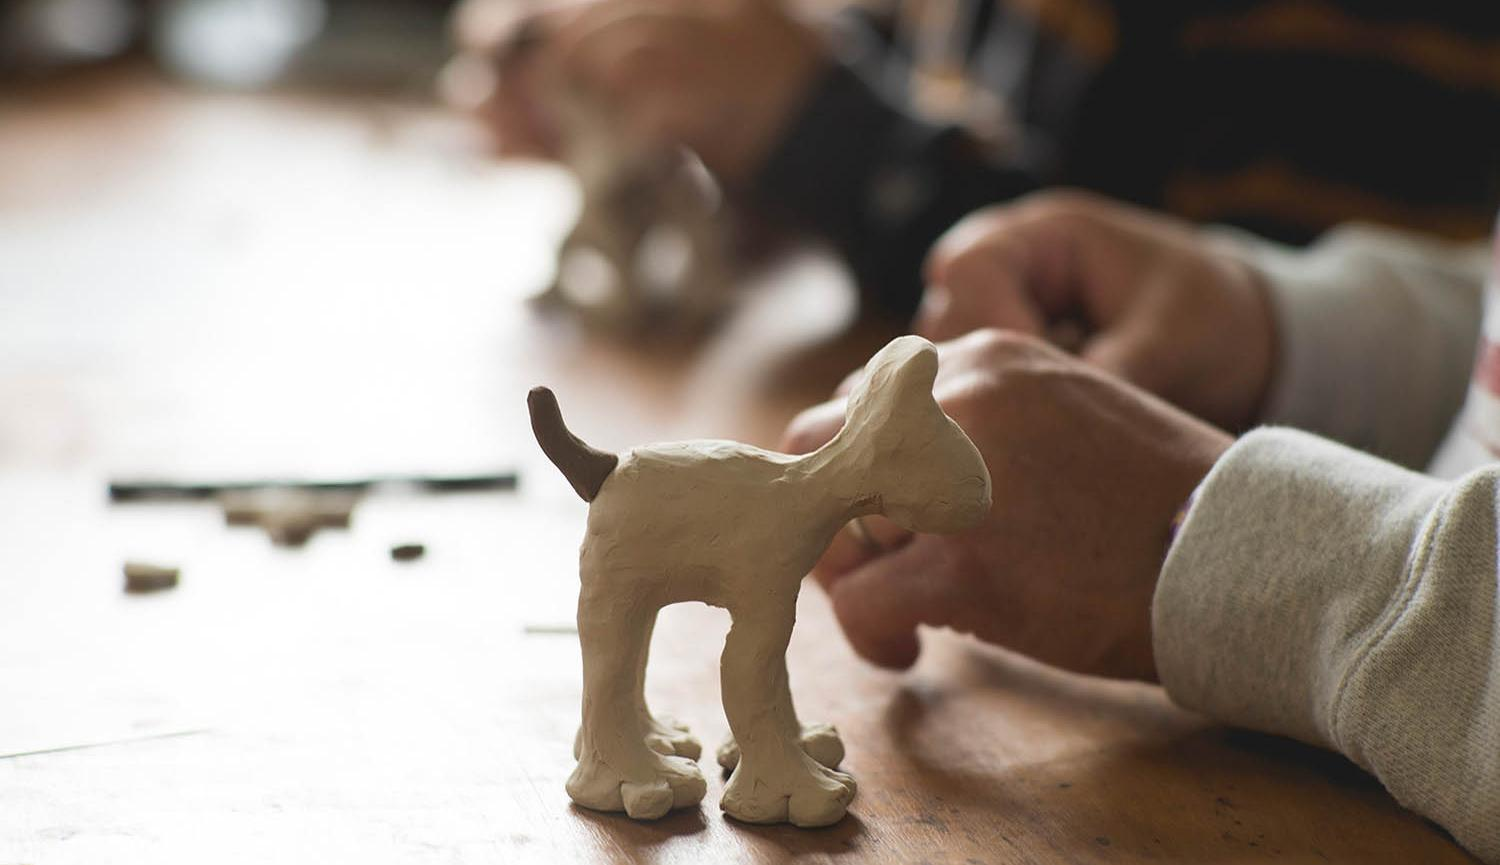 Aardman Gromit Model Making Workshop at Live Theatre image of Gromit clay model